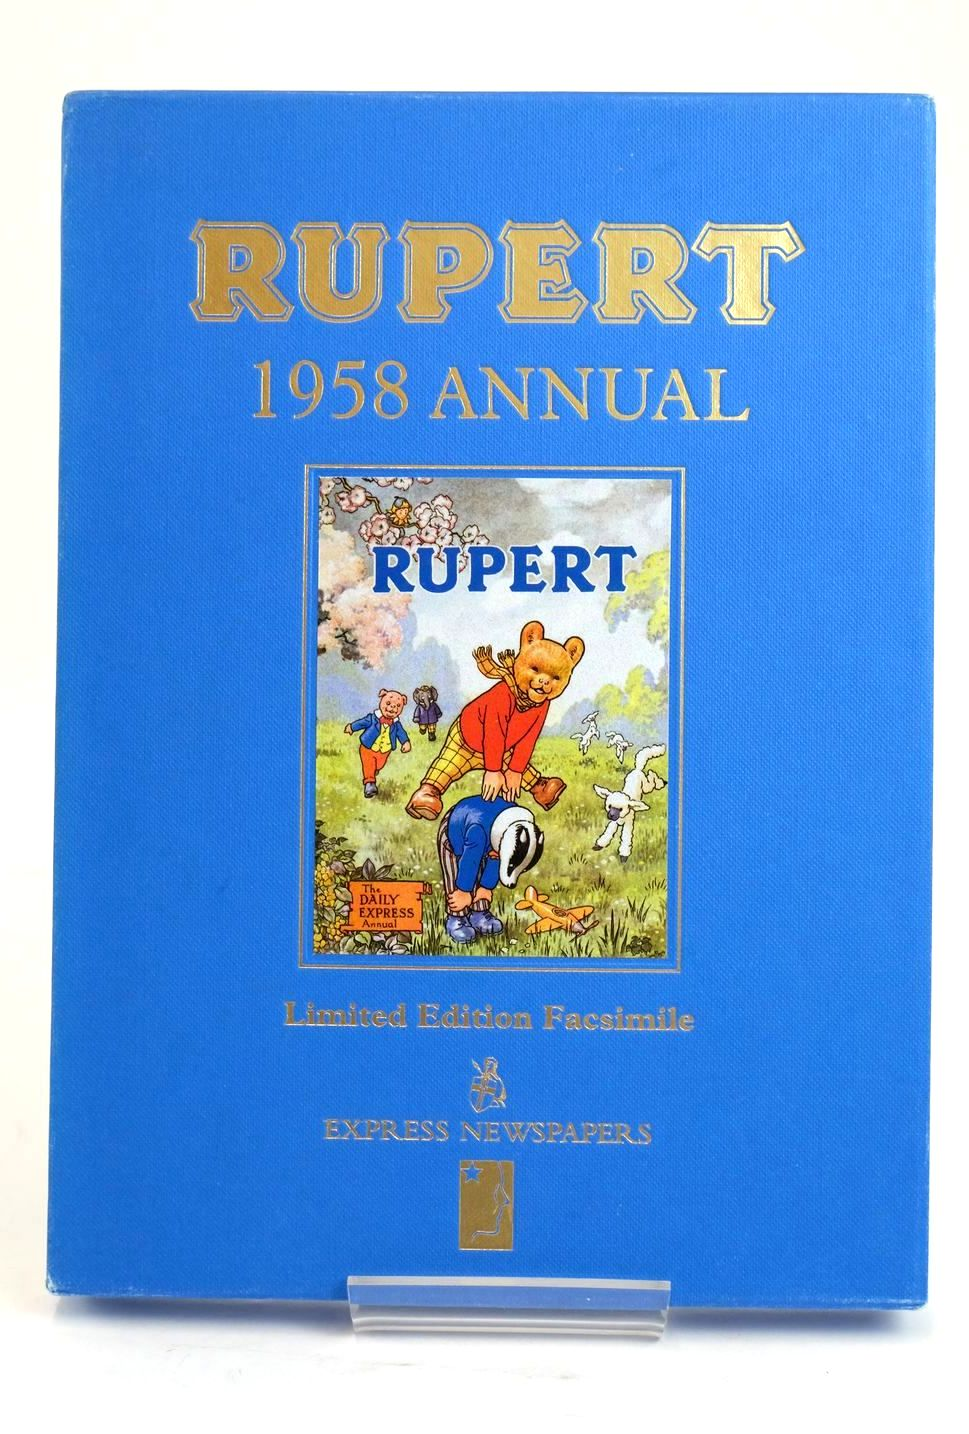 Photo of RUPERT ANNUAL 1958 (FACSIMILE) written by Bestall, Alfred illustrated by Bestall, Alfred published by Express Newspapers Ltd. (STOCK CODE: 1319415)  for sale by Stella & Rose's Books